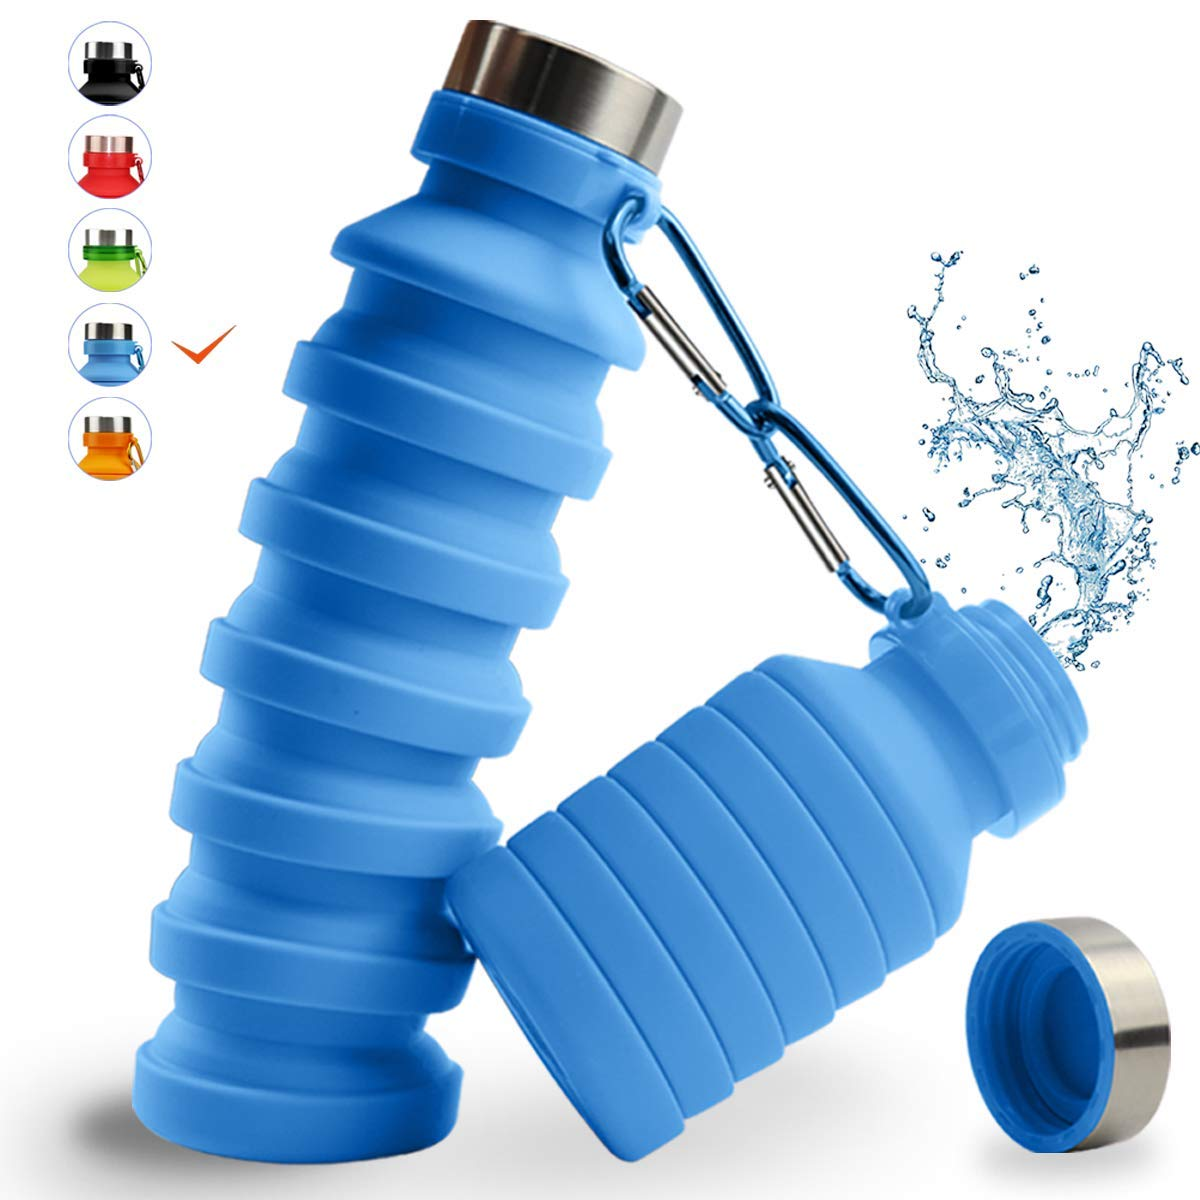 Collapsible Water Bottle, MOLYHUA 18oz(550ML) Designed for Travel and Outdoor. Foldable Sports Water Bottles for Travel Gym Camping Hiking, Portable Leak Proof - BPA Free/Lightweight/Eco-Friendly